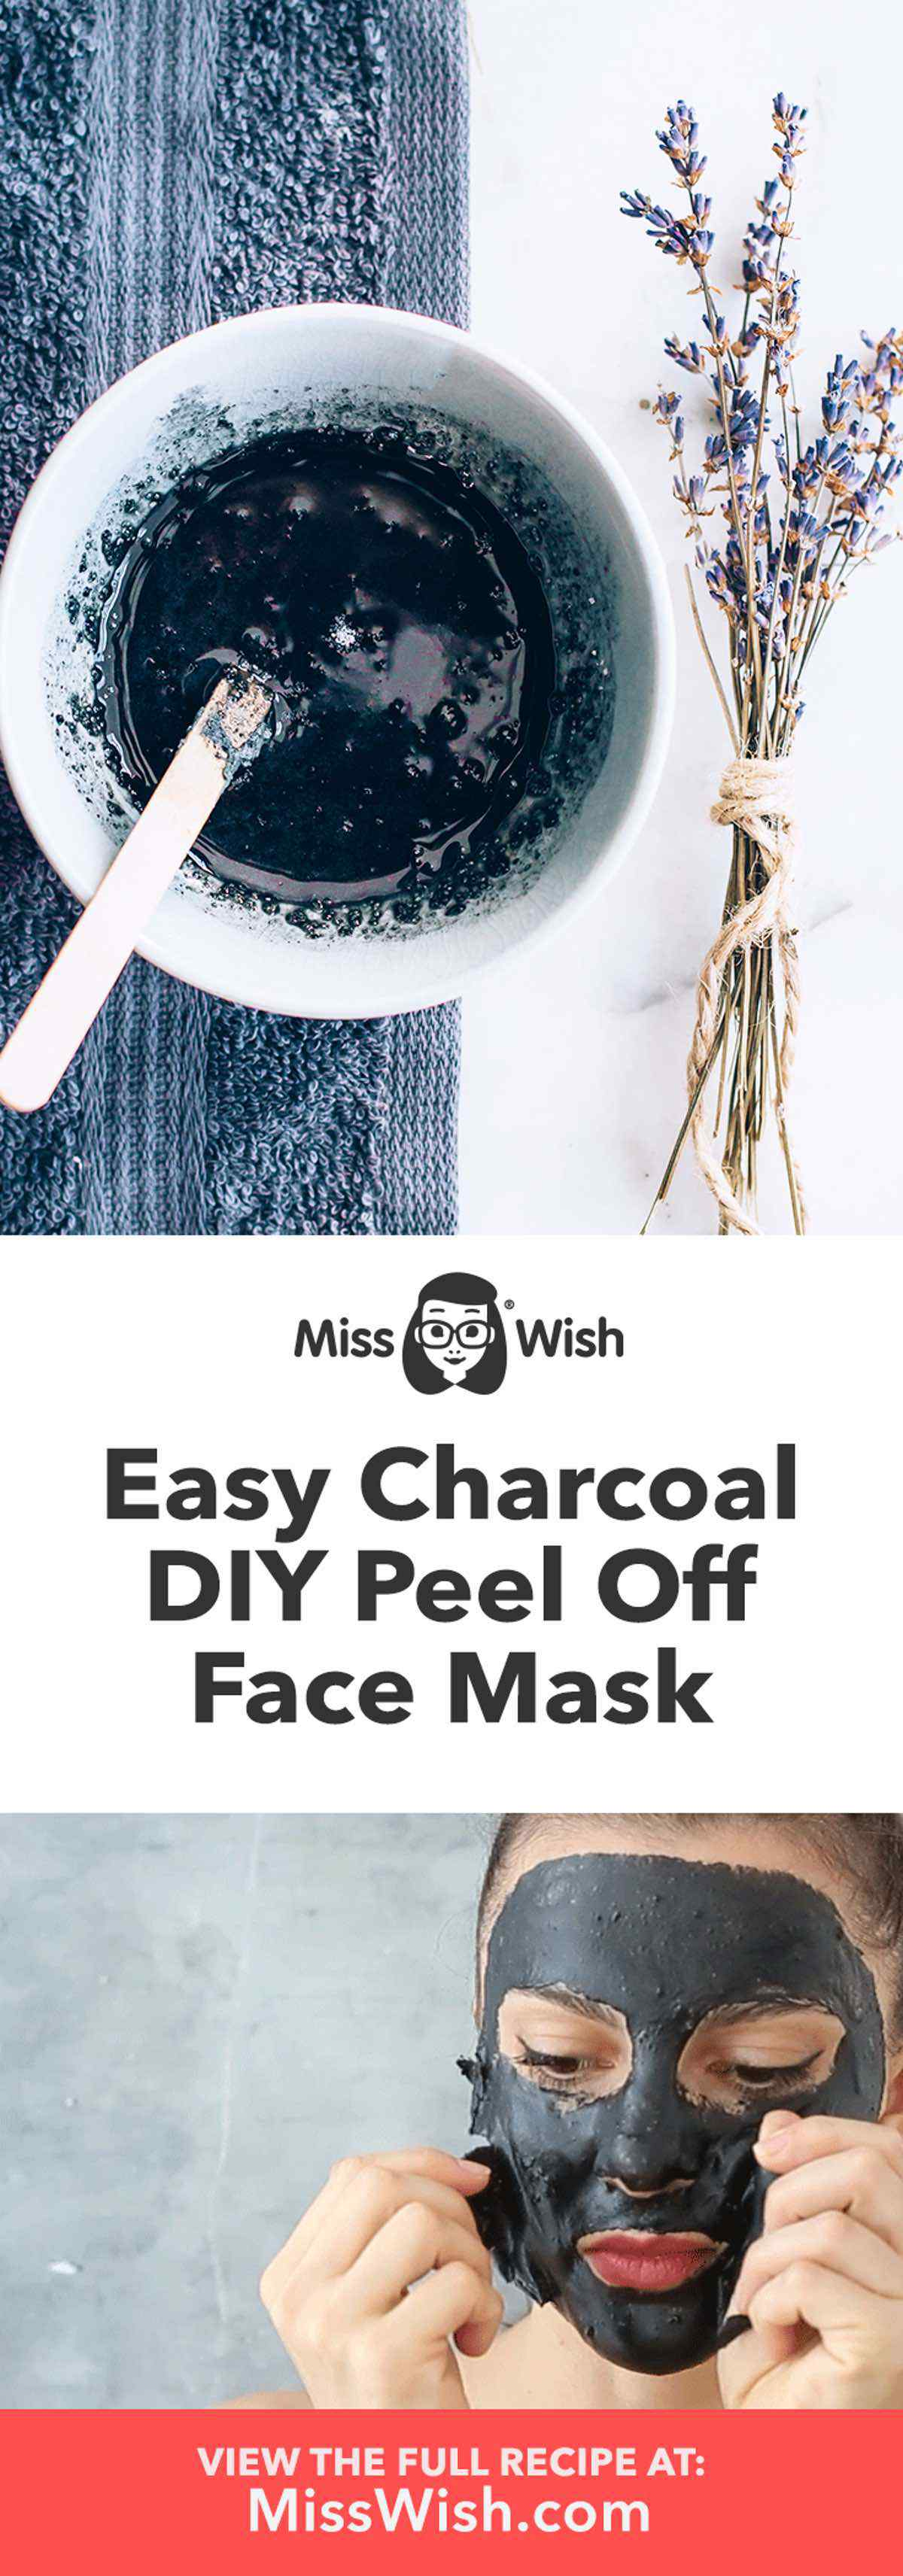 Easy DIY Charcoal Peel Off Face Mask